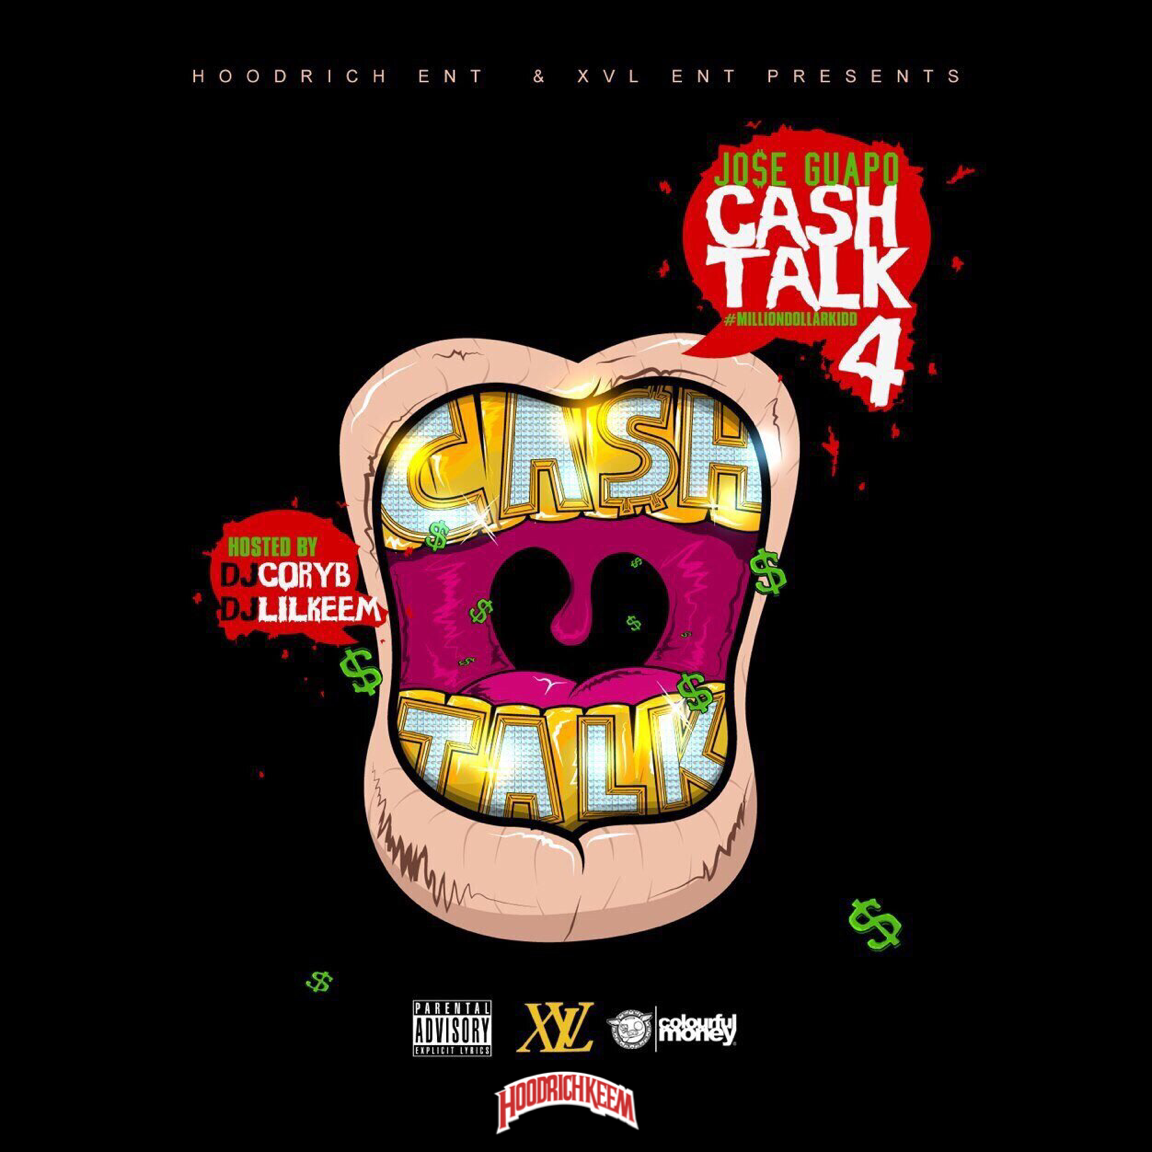 Jose Guapo Cash Talk 4